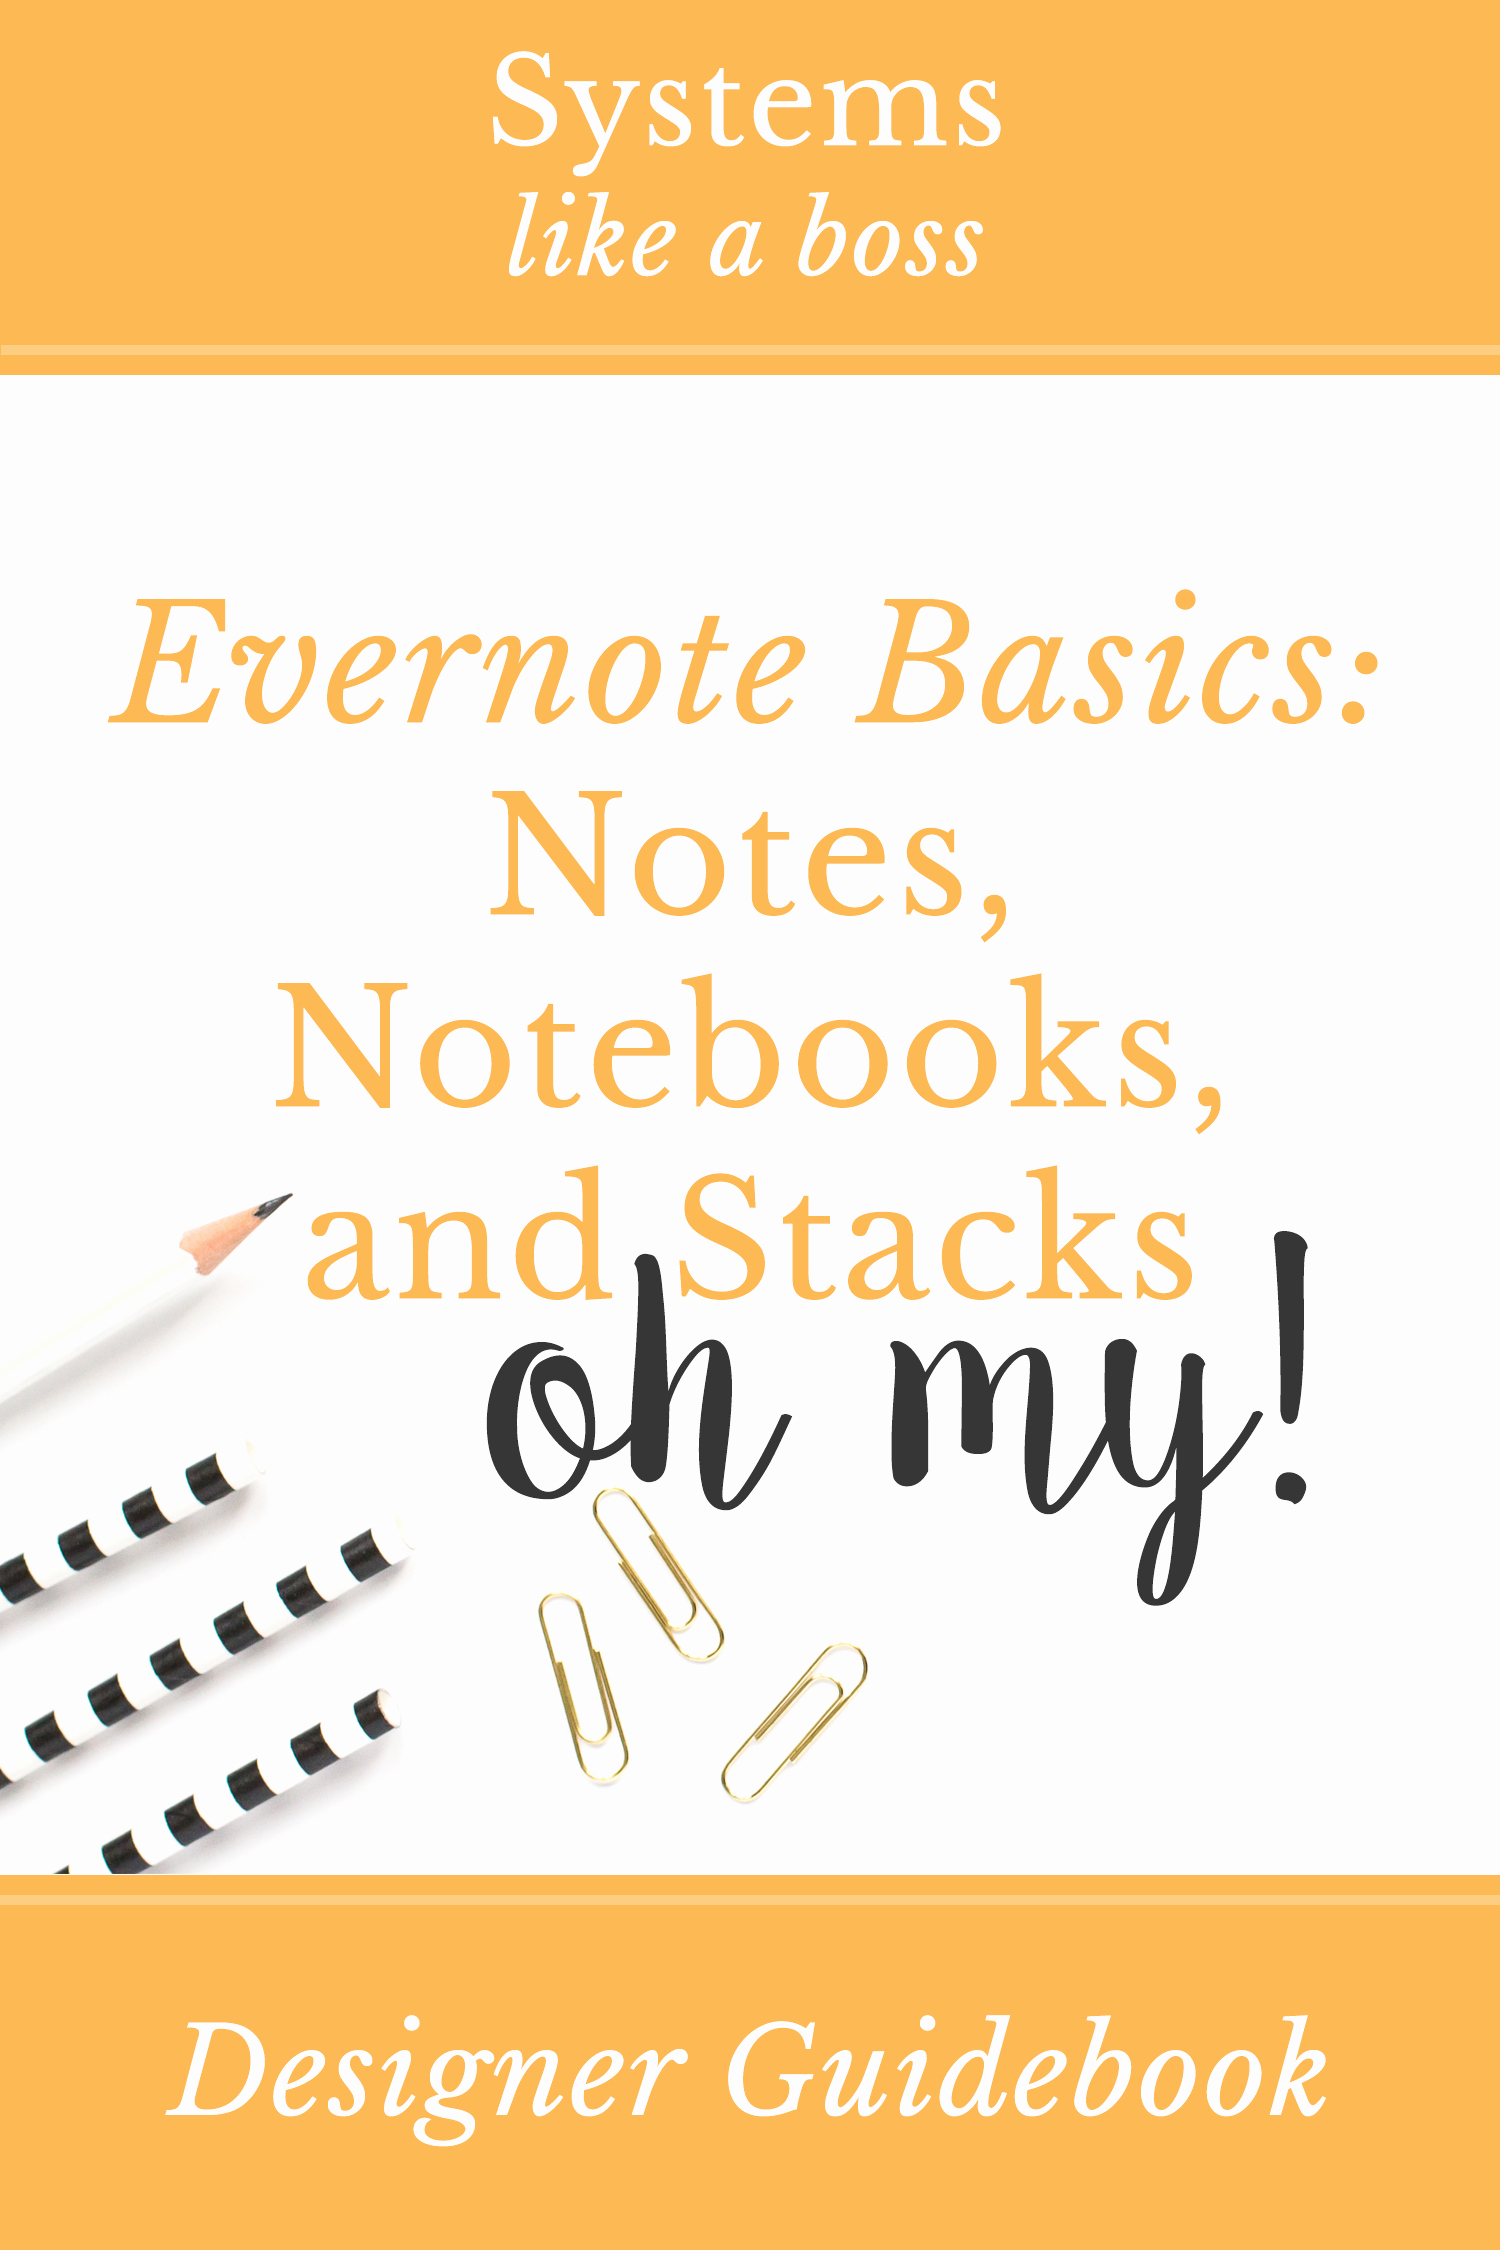 Evernote Project Management Template Fresh Evernote Basics Notes Notebooks and Stacks Oh My